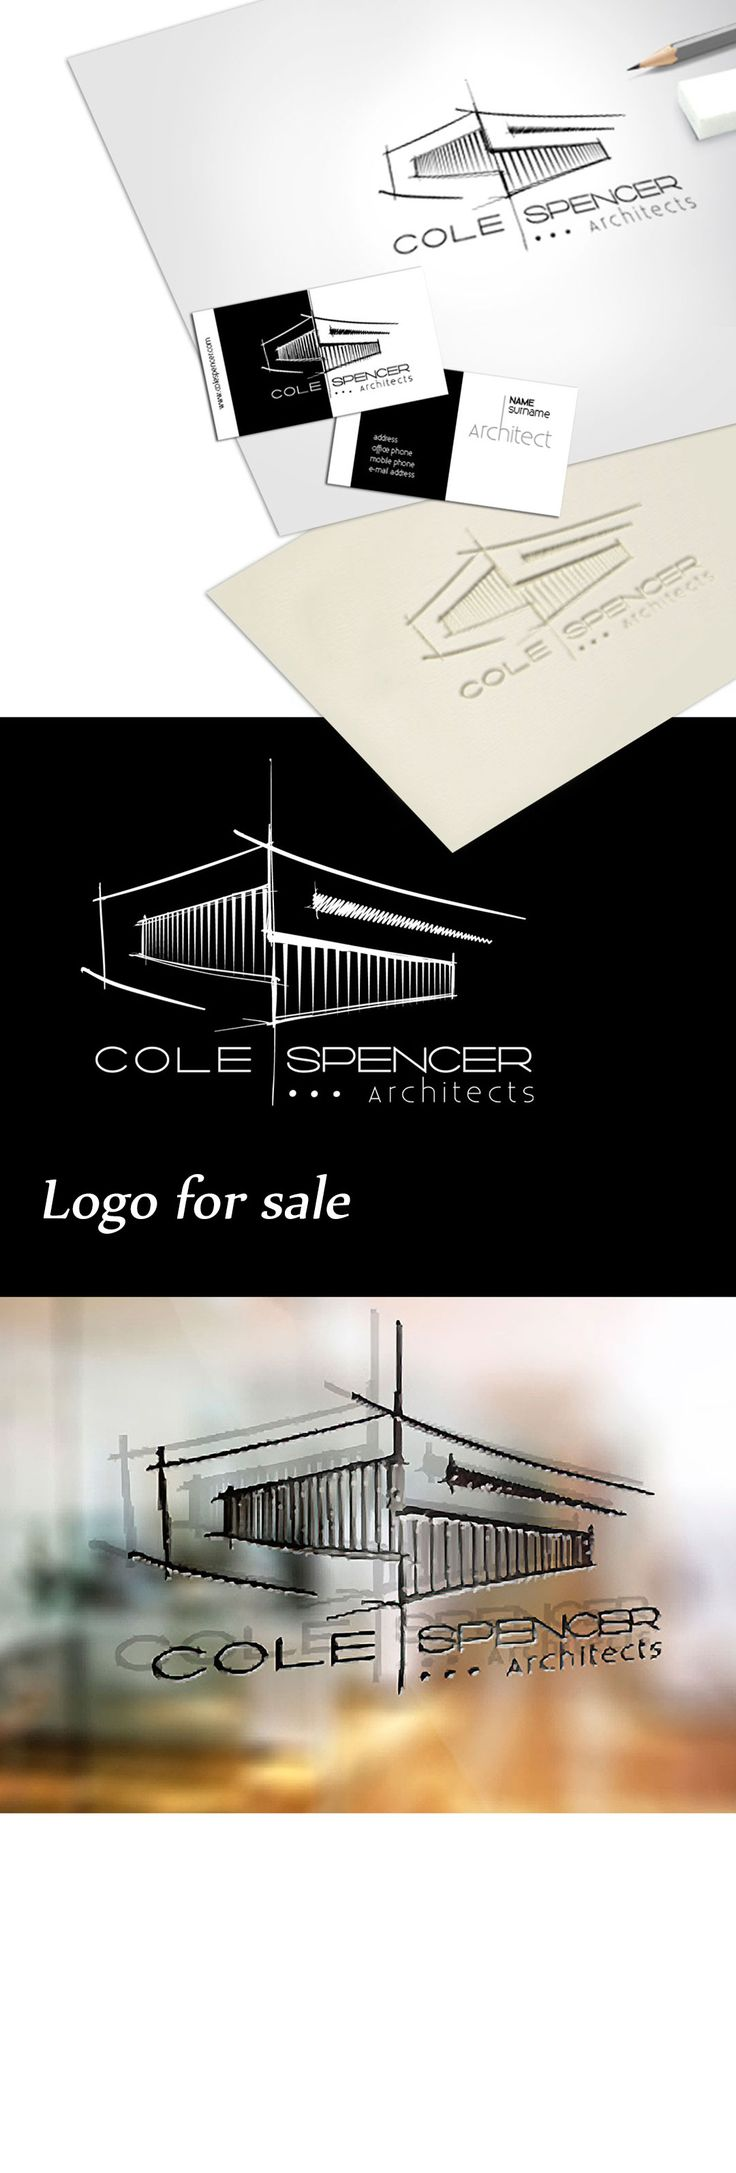 resume Coles Online Resume best 25 architect resume ideas on pinterest architecture monochrome logo for firm with initials c and s uniqueartem